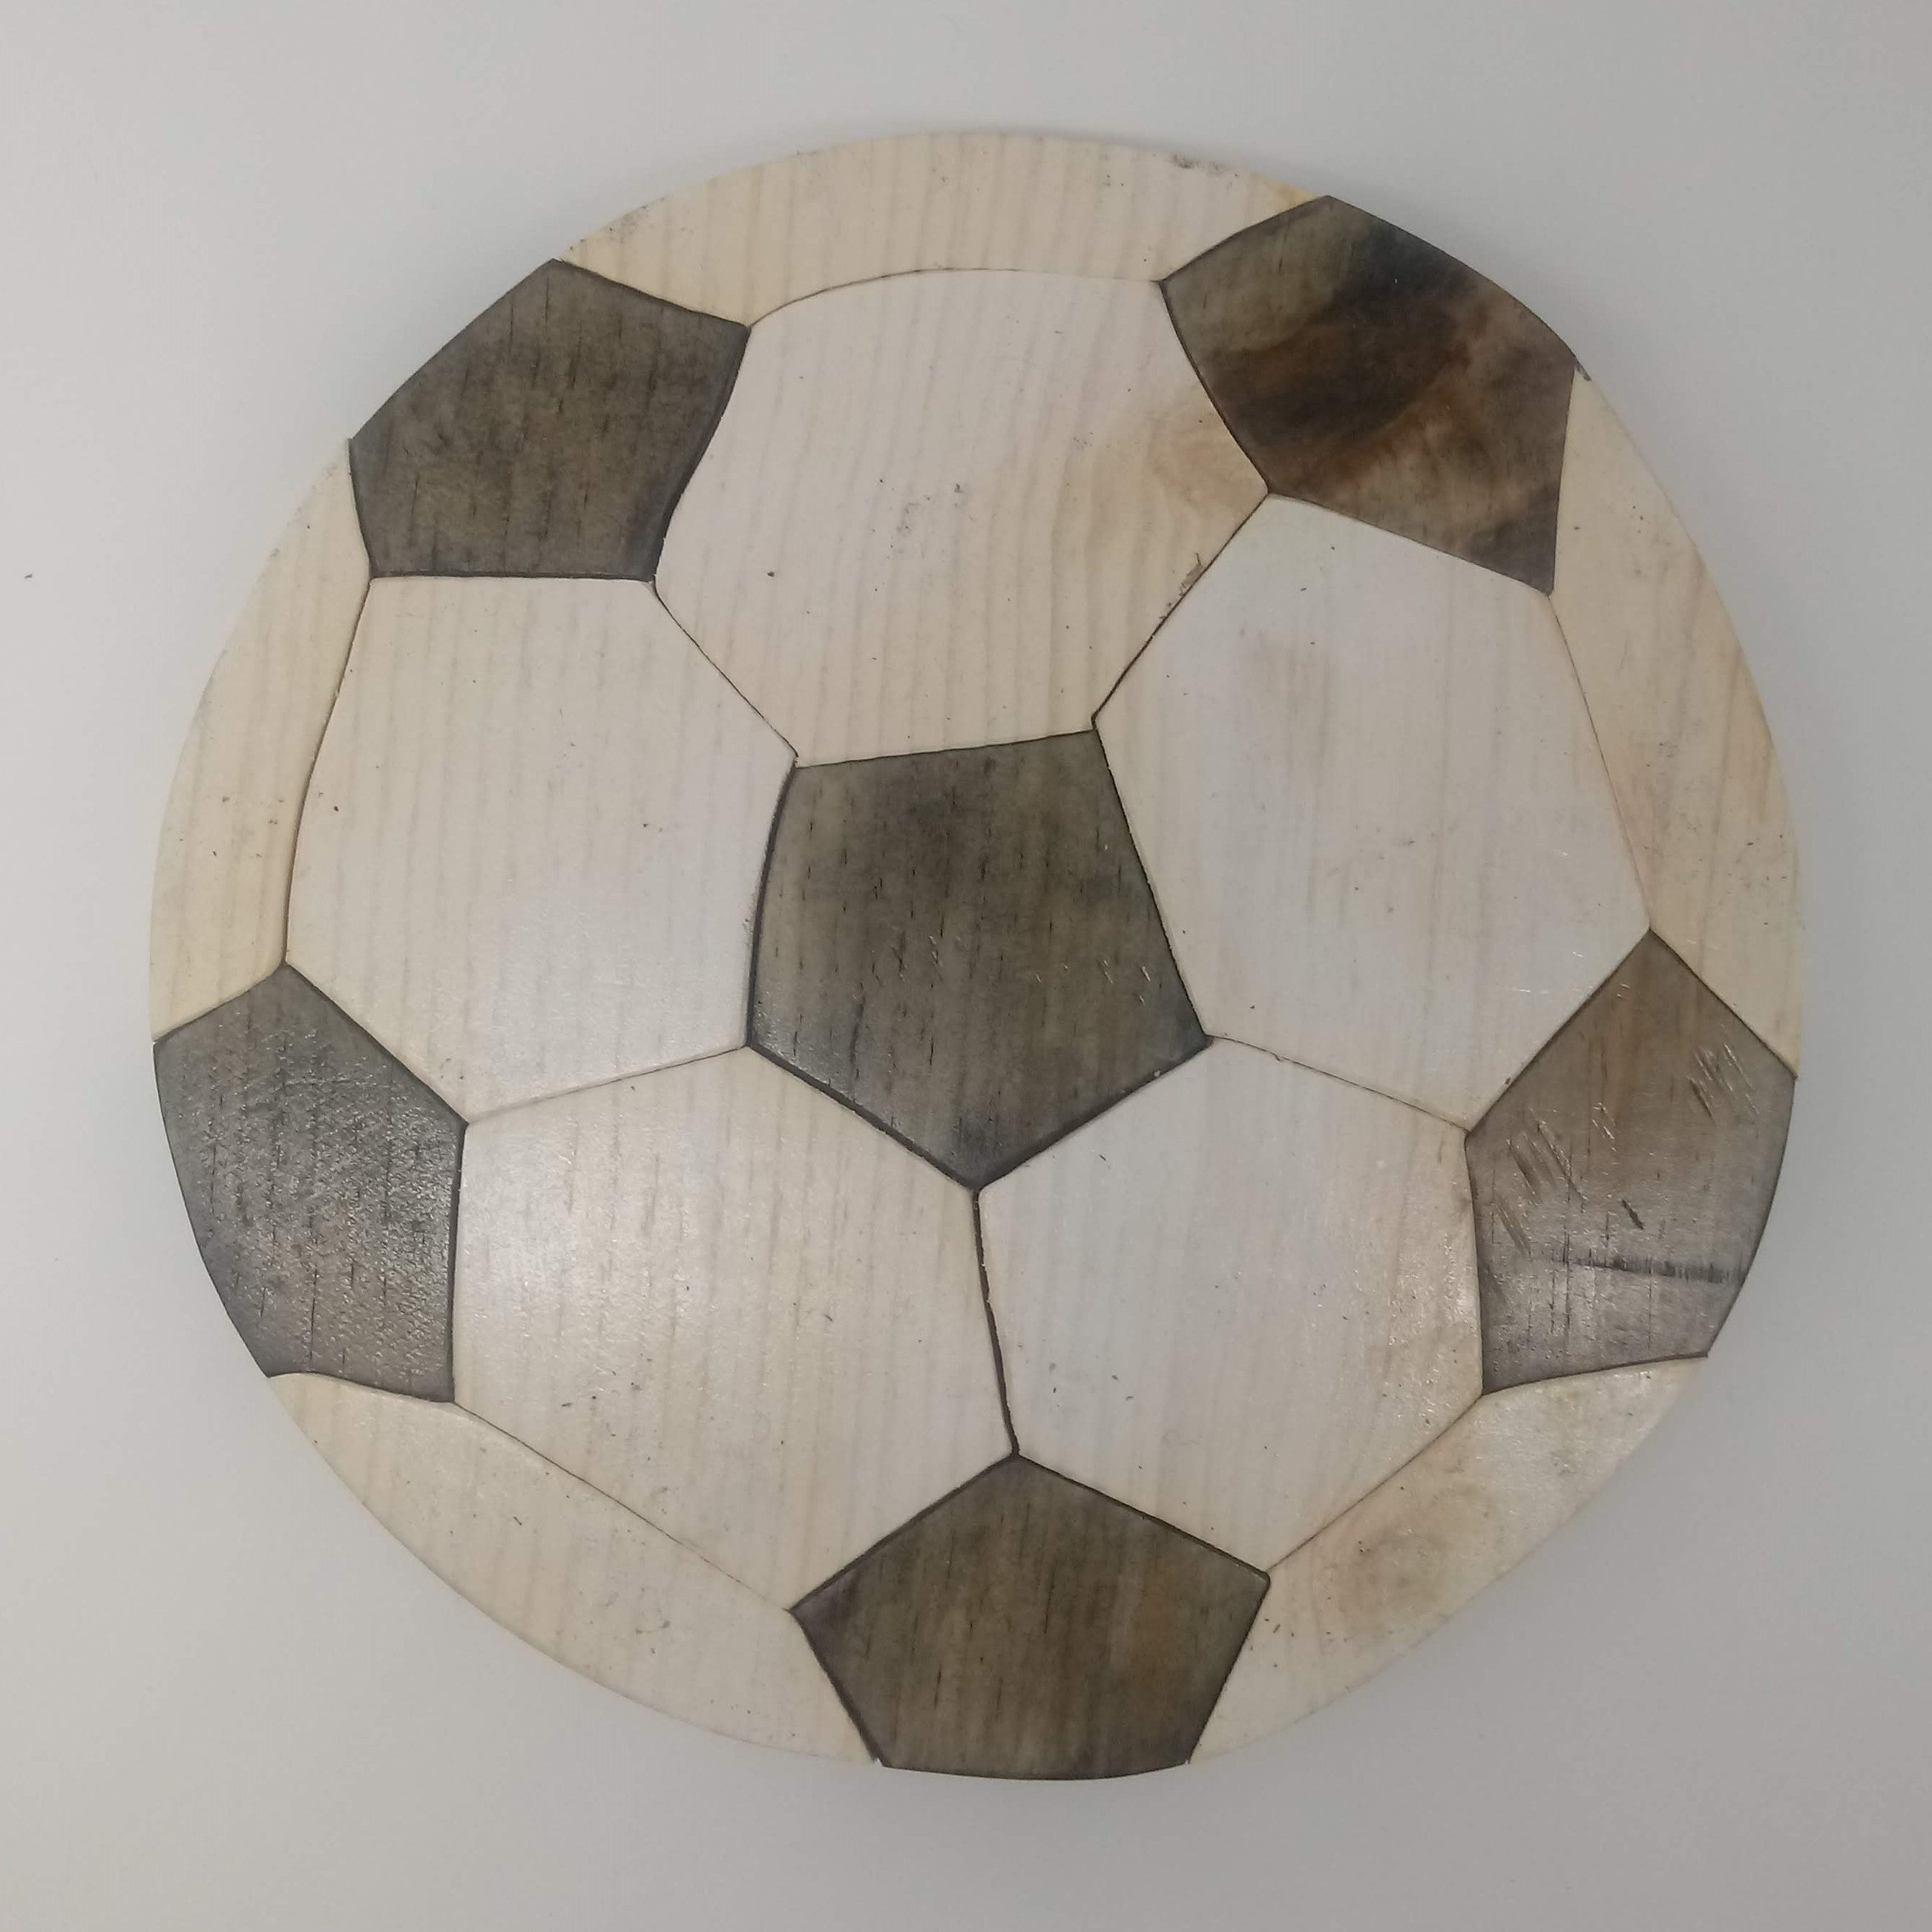 Paper Model of a Truncated Icosahedron (football) | Manualidades ... | 2688x2688